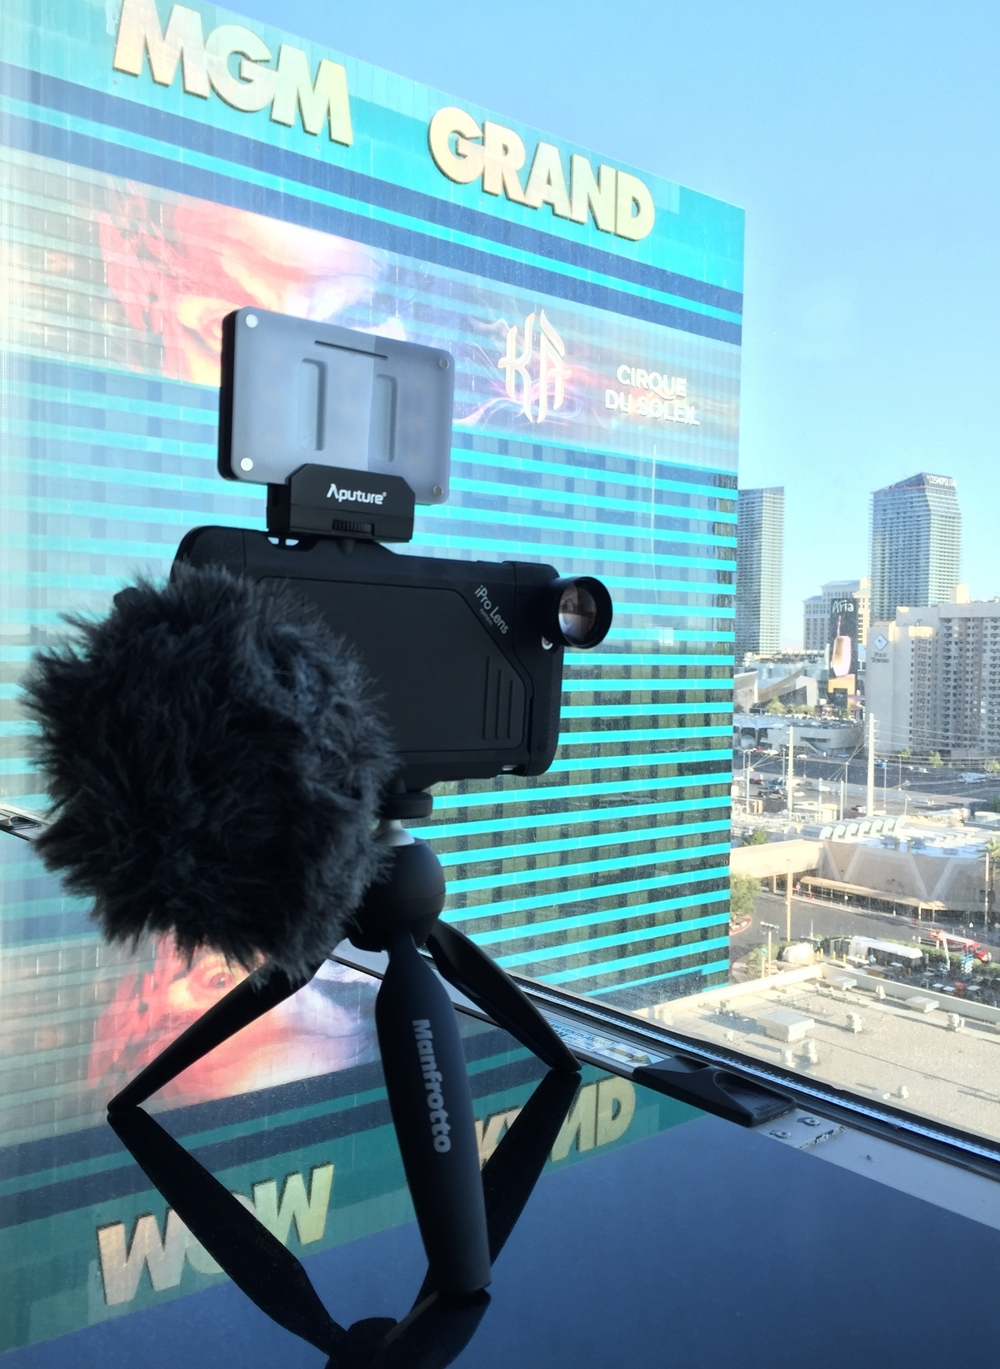 Apple iPhone 6s+, iPro case, iPro 2x lens, Manfrotto Pixi mini-tripod, RØDE Videomic Me, Las Vegas NAB 2016